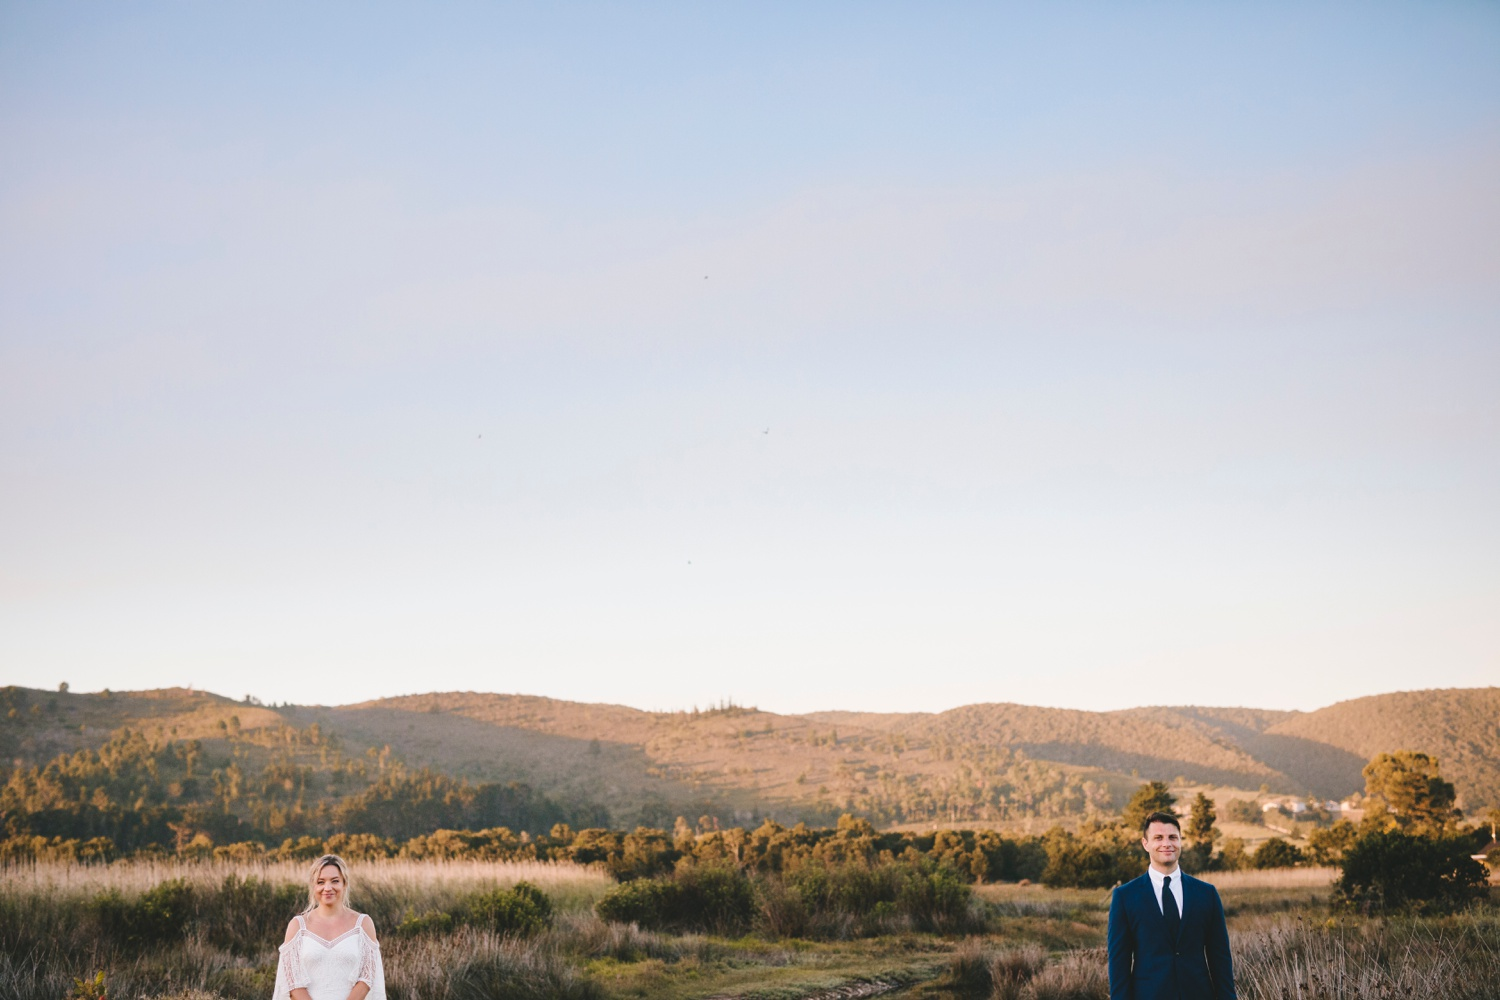 charlie_ray_photography_runaway_romance_elopement_emily_moon_plett_simple_boho_wedding_south_africa_bohemium_0106.jpg